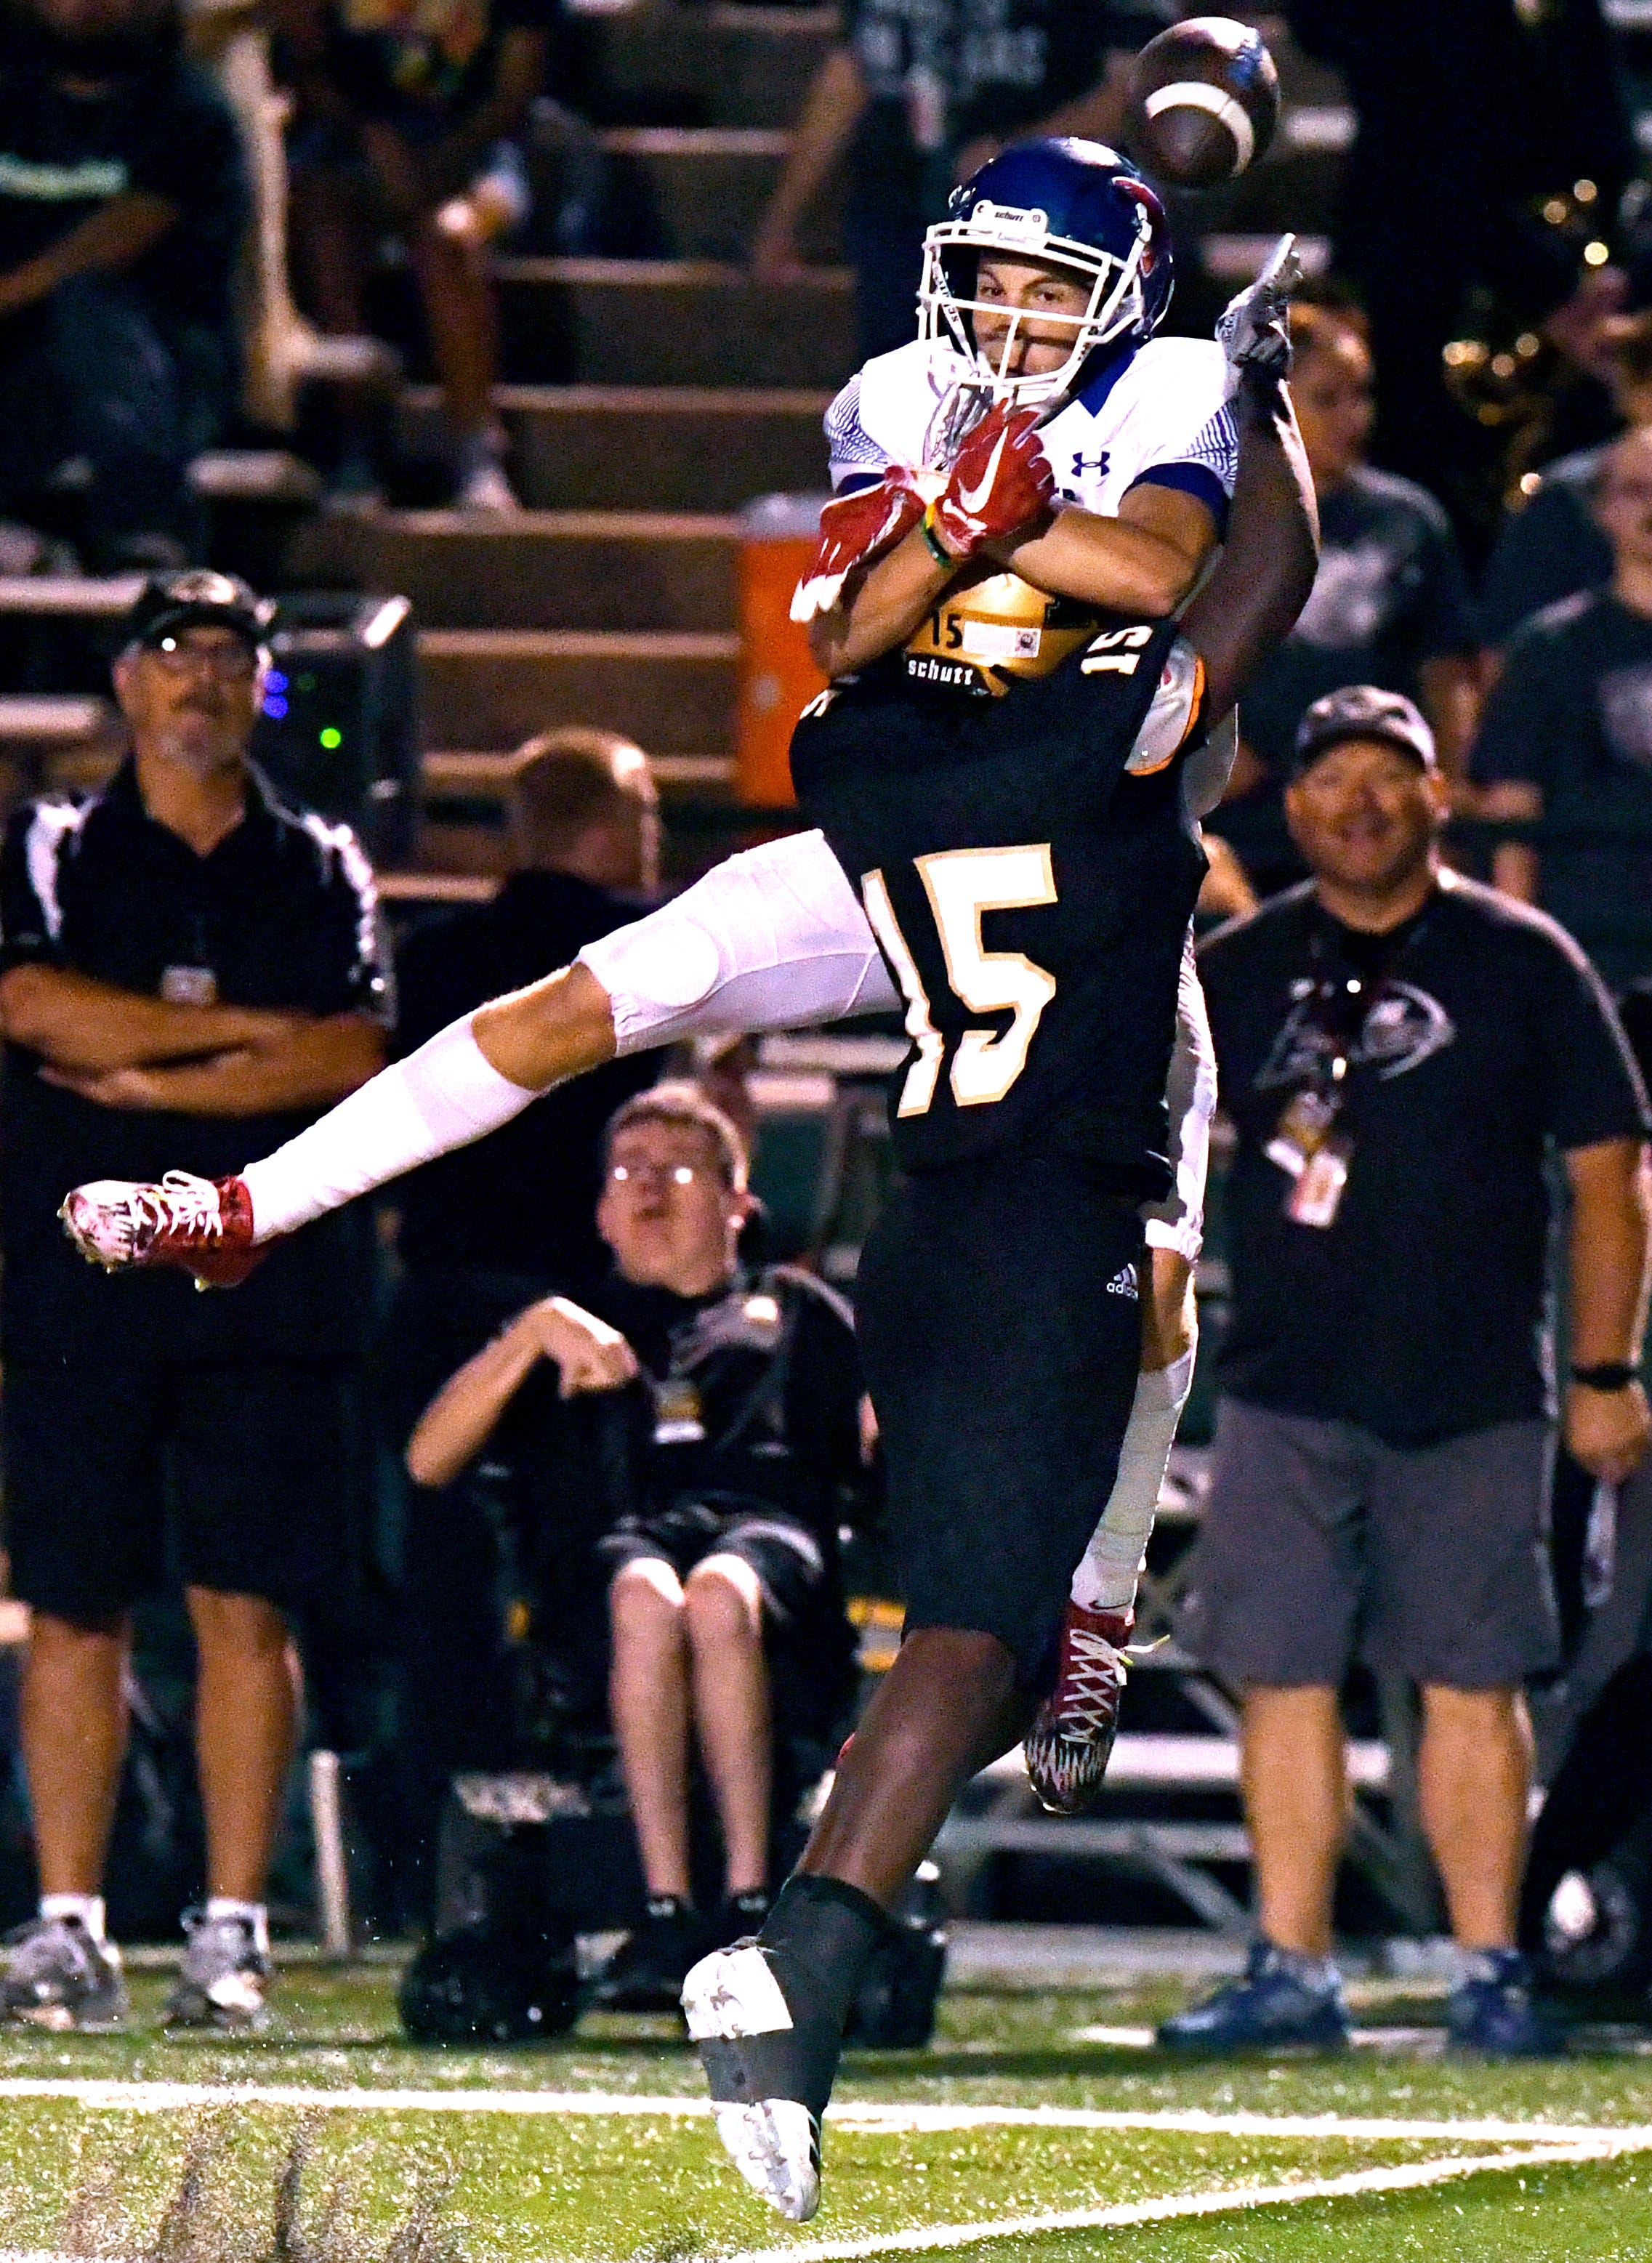 Abilene High defensive back Nathaniel Jones swats the ball away from Cooper wide receiver Mawson Reynolds, preventing the pass completion.